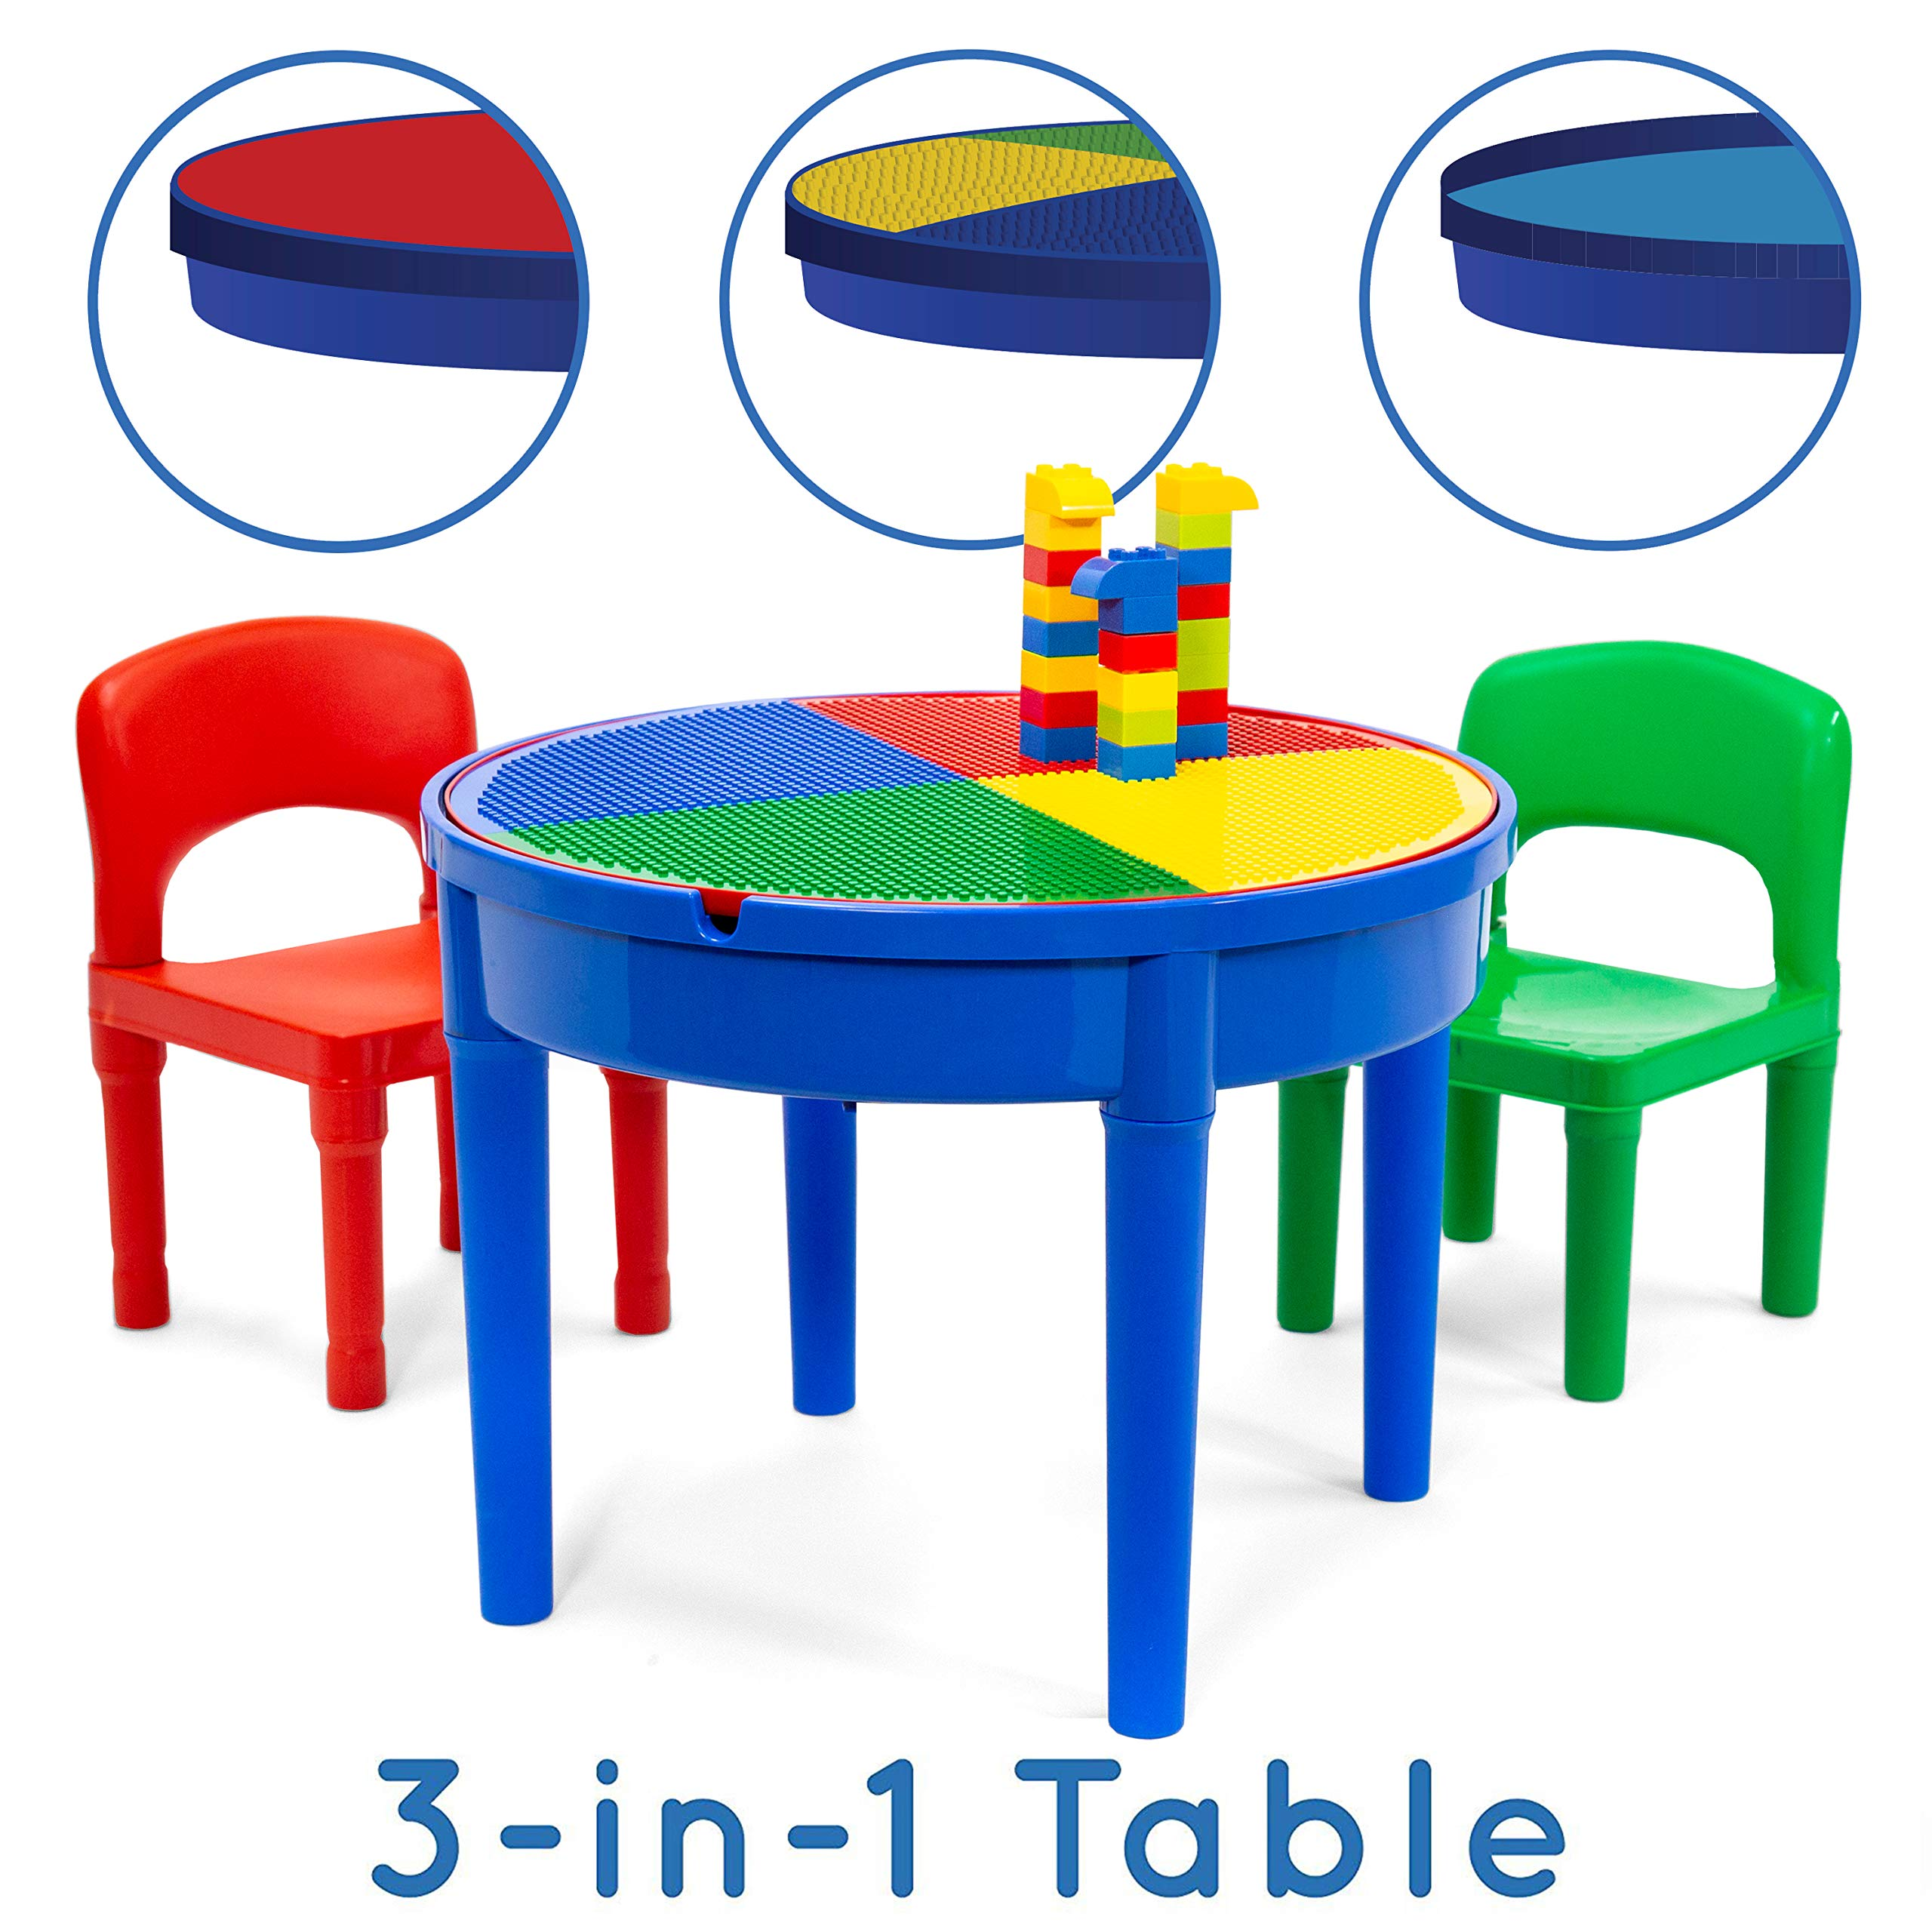 Play Platoon Kids Activity Table Set - 3 in 1 Round Water Table, Craft Table and Building Brick Table with Storage - Includes 2 Chairs and 25 Jumbo Bricks - Primary Colors by Play Platoon